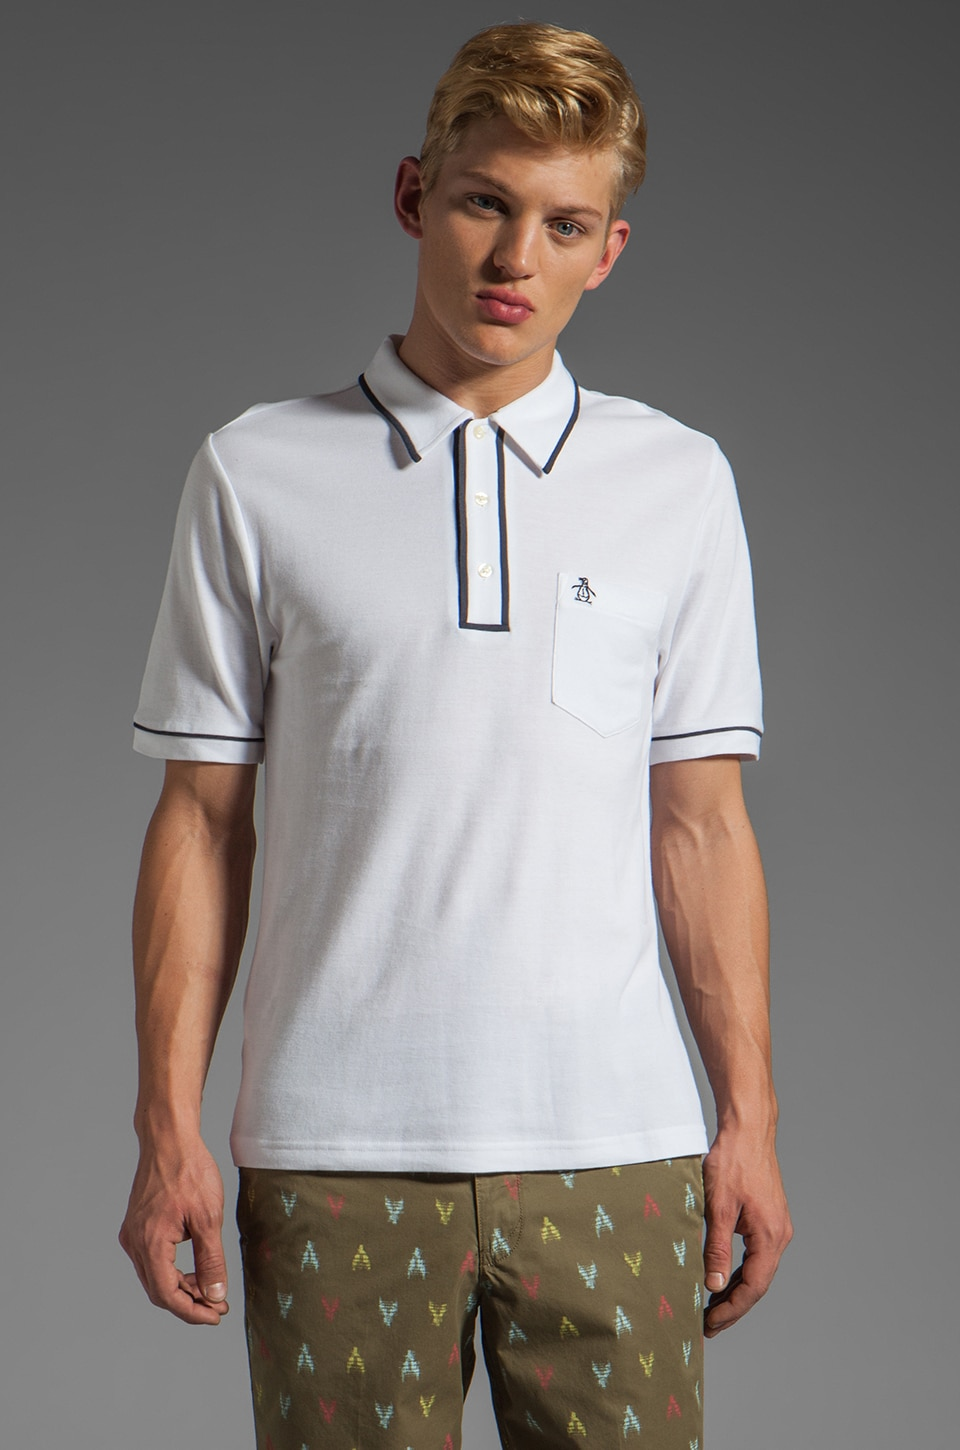 Penguin Earl Polo in Pure White